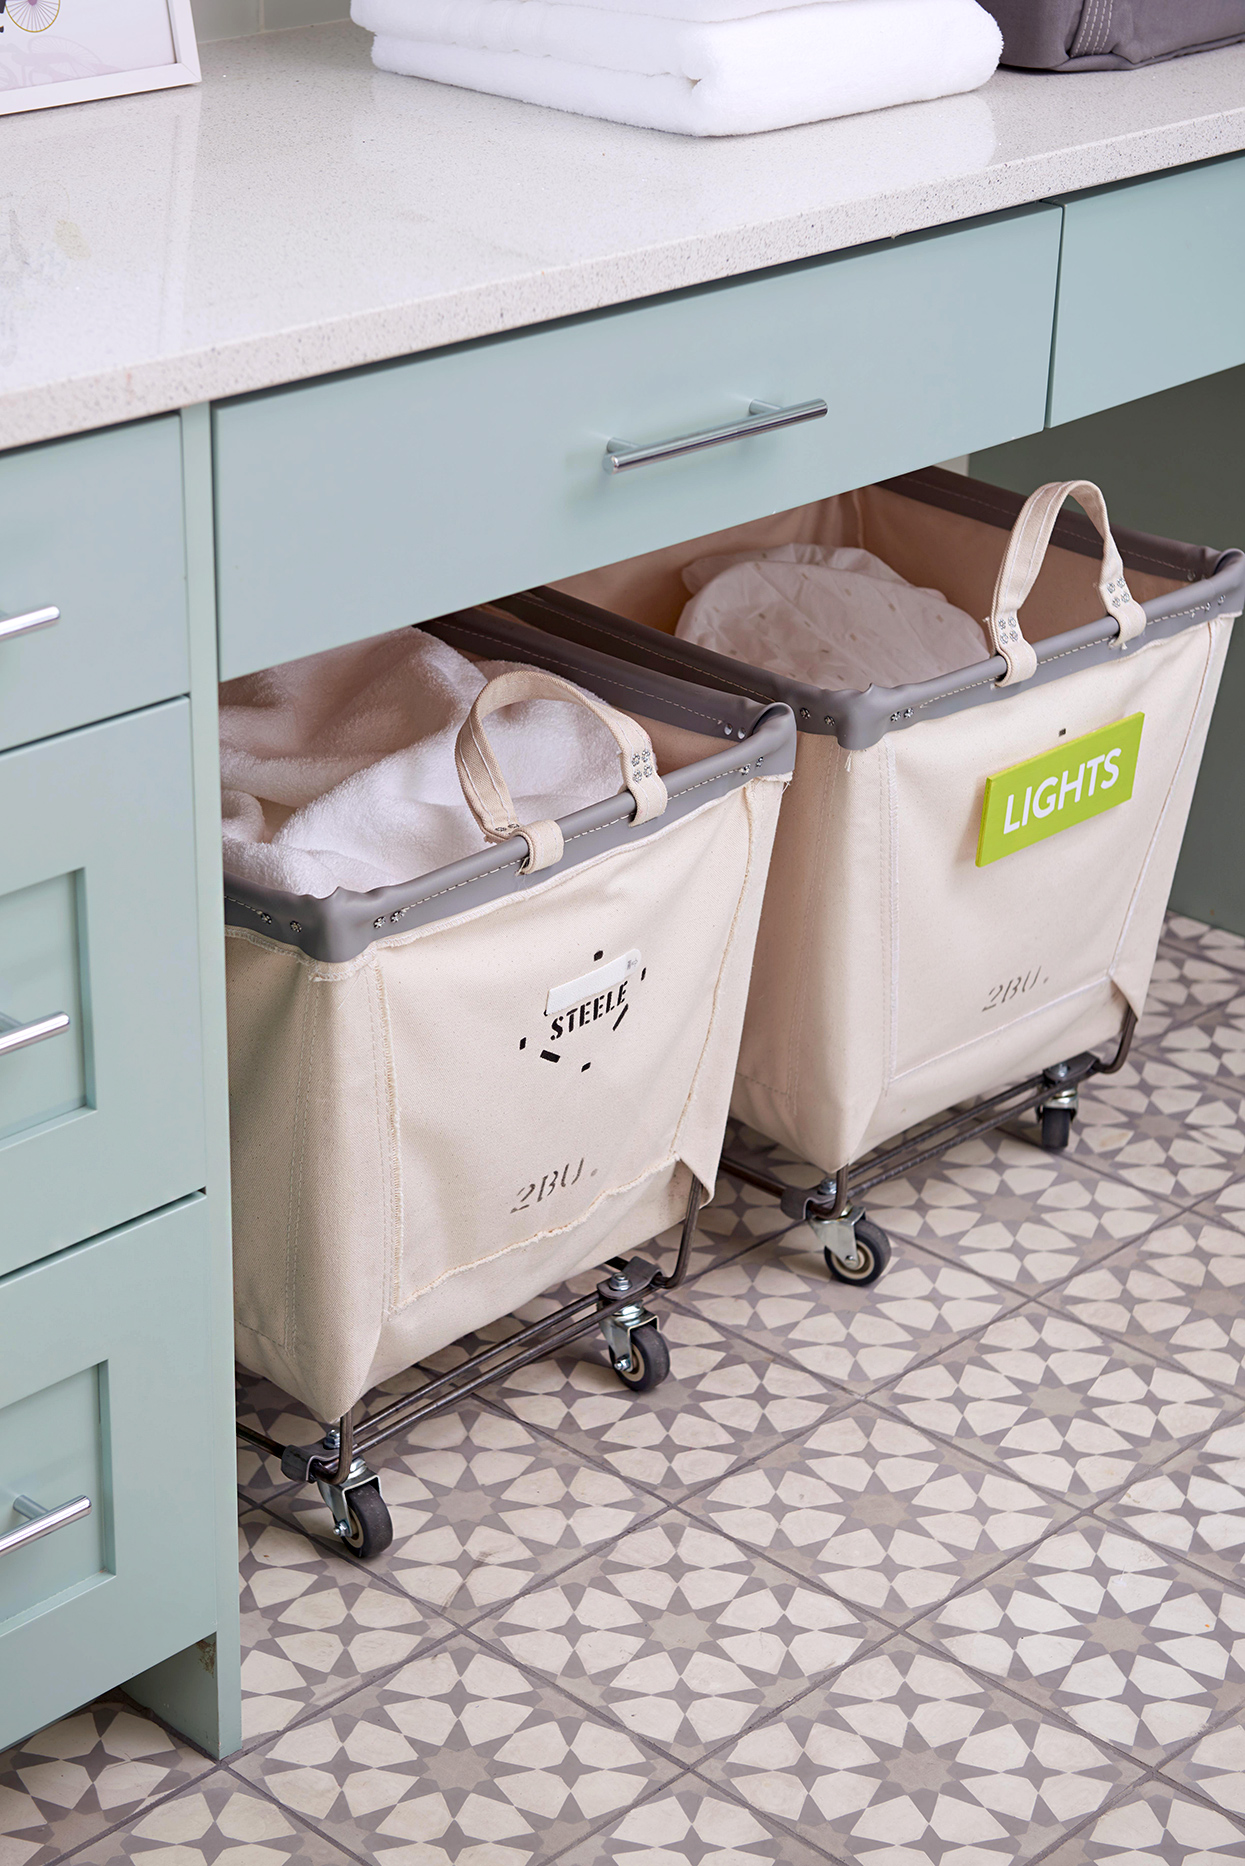 labeled bins with rollers underneath laundry room counter